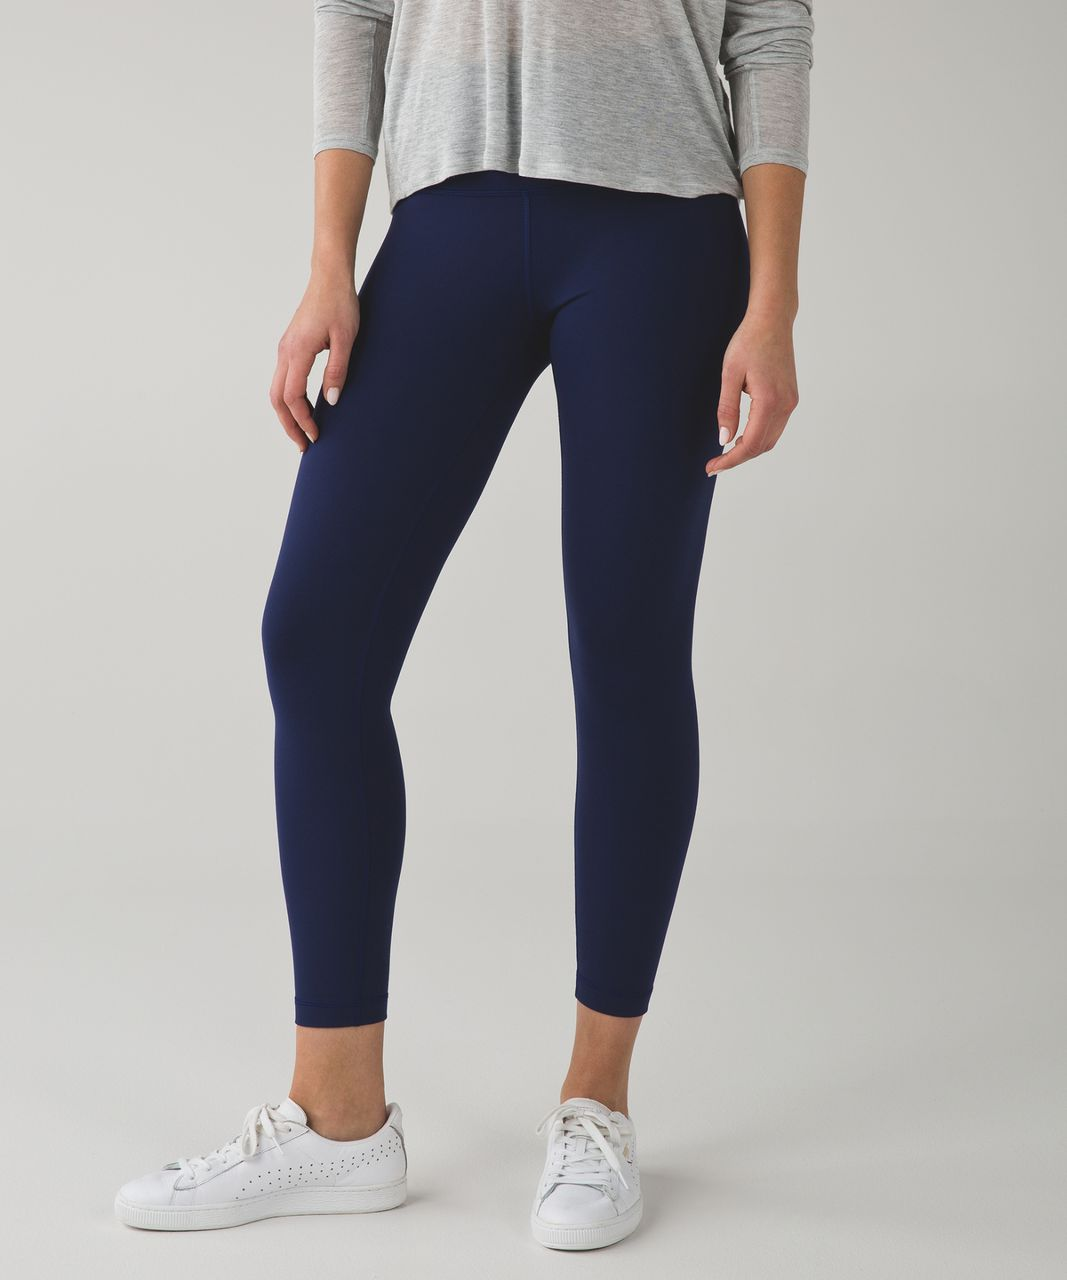 Lululemon High Times Pant *Full-On Luon - Hero Blue